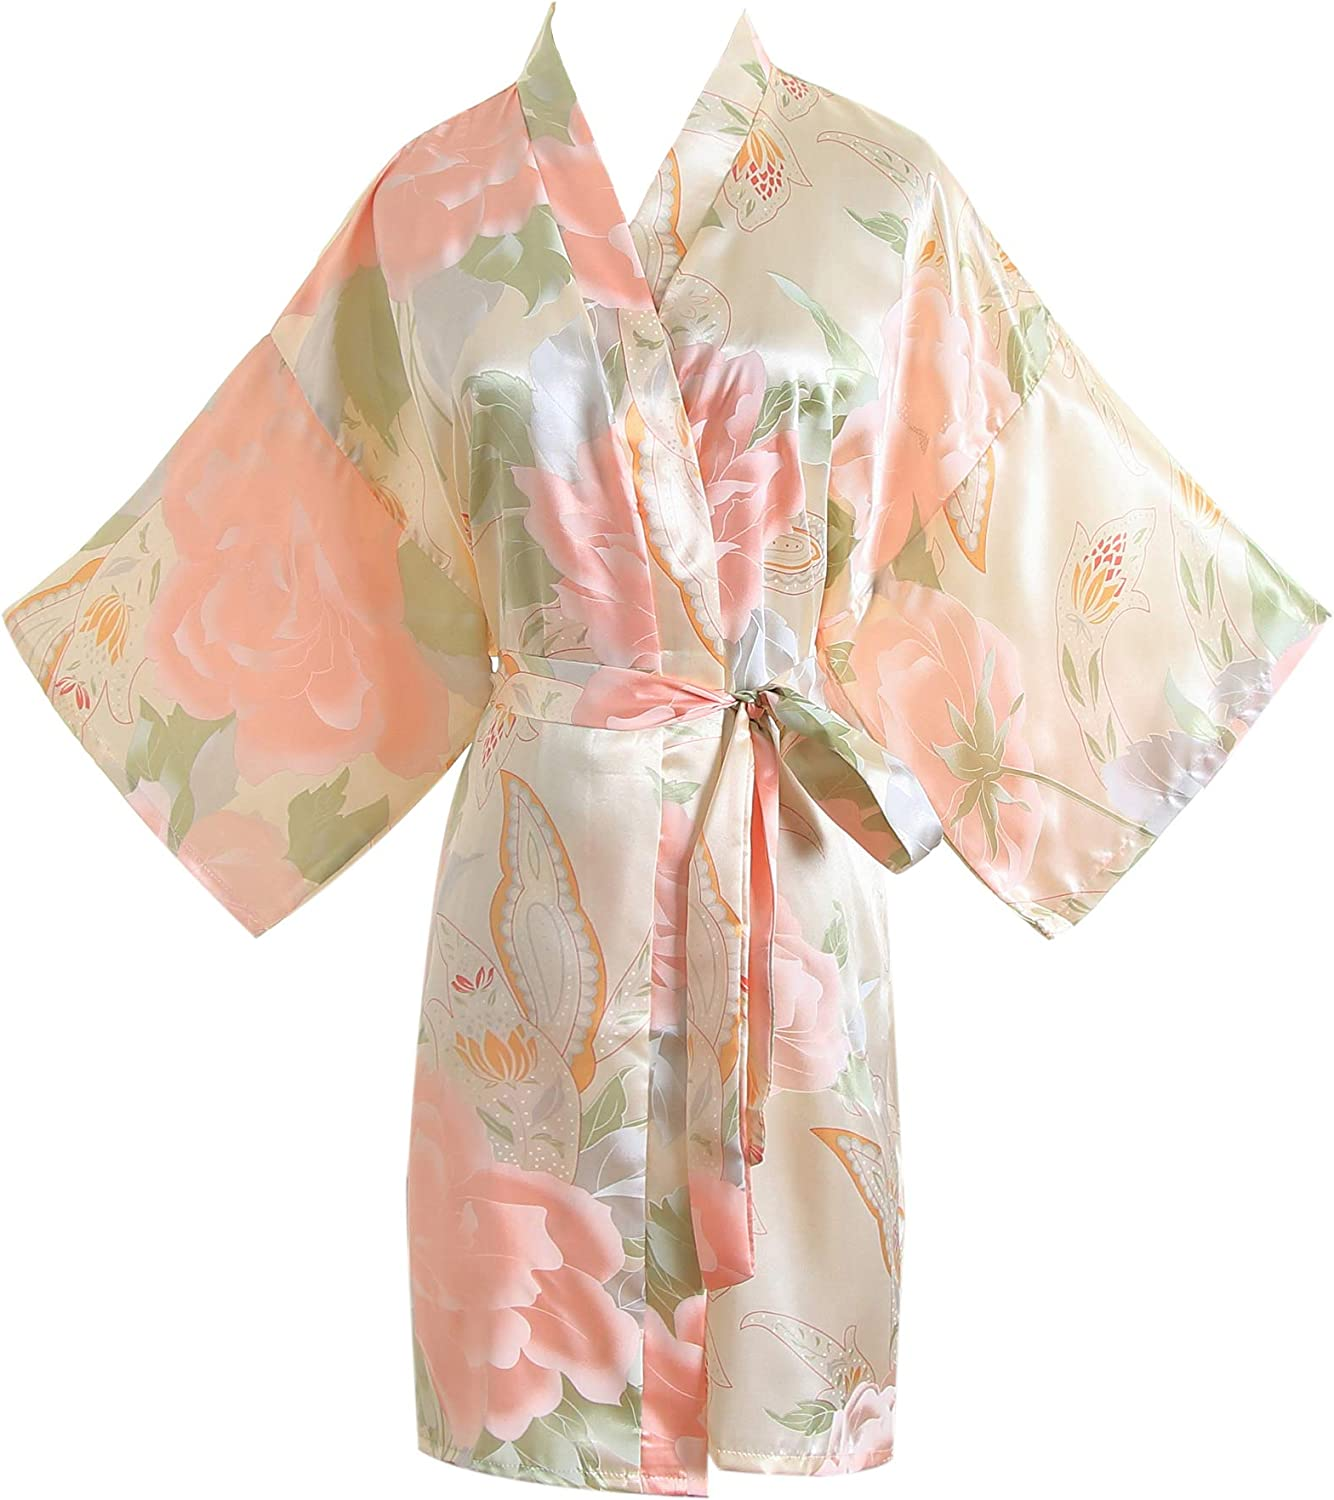 Resort Wear Kimono Crossover Flower Dress Monogram Robes Bridesmaid Dress Bohemian Clothing Labor And Delivery Robe Hospital Gown